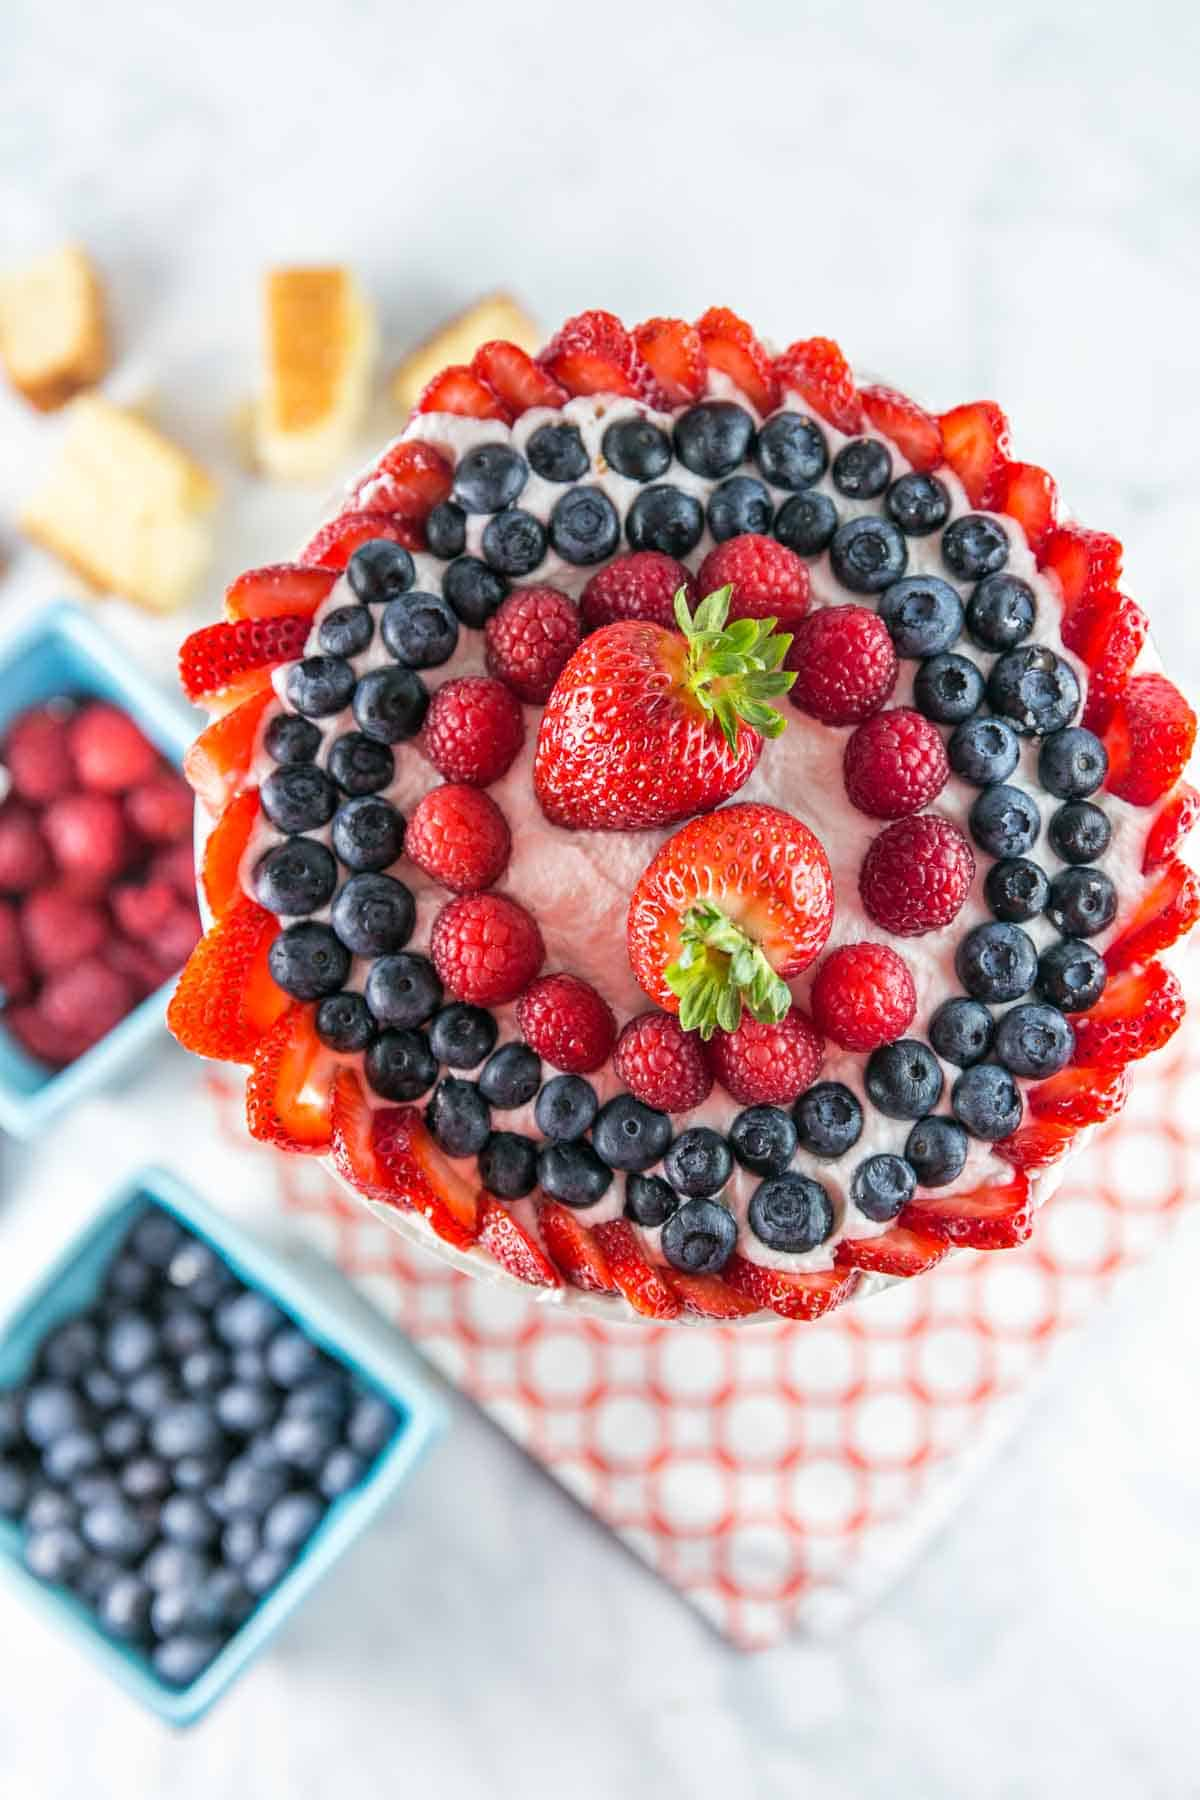 Summer Berry Trifle: Let berries shine in this easy, make ahead dessert perfect for summer entertaining. Homemade vanilla cake and lemon custard make it even better than store bought! {Bunsen Burner Bakery} #trifle #cake #berries #summerdesserts